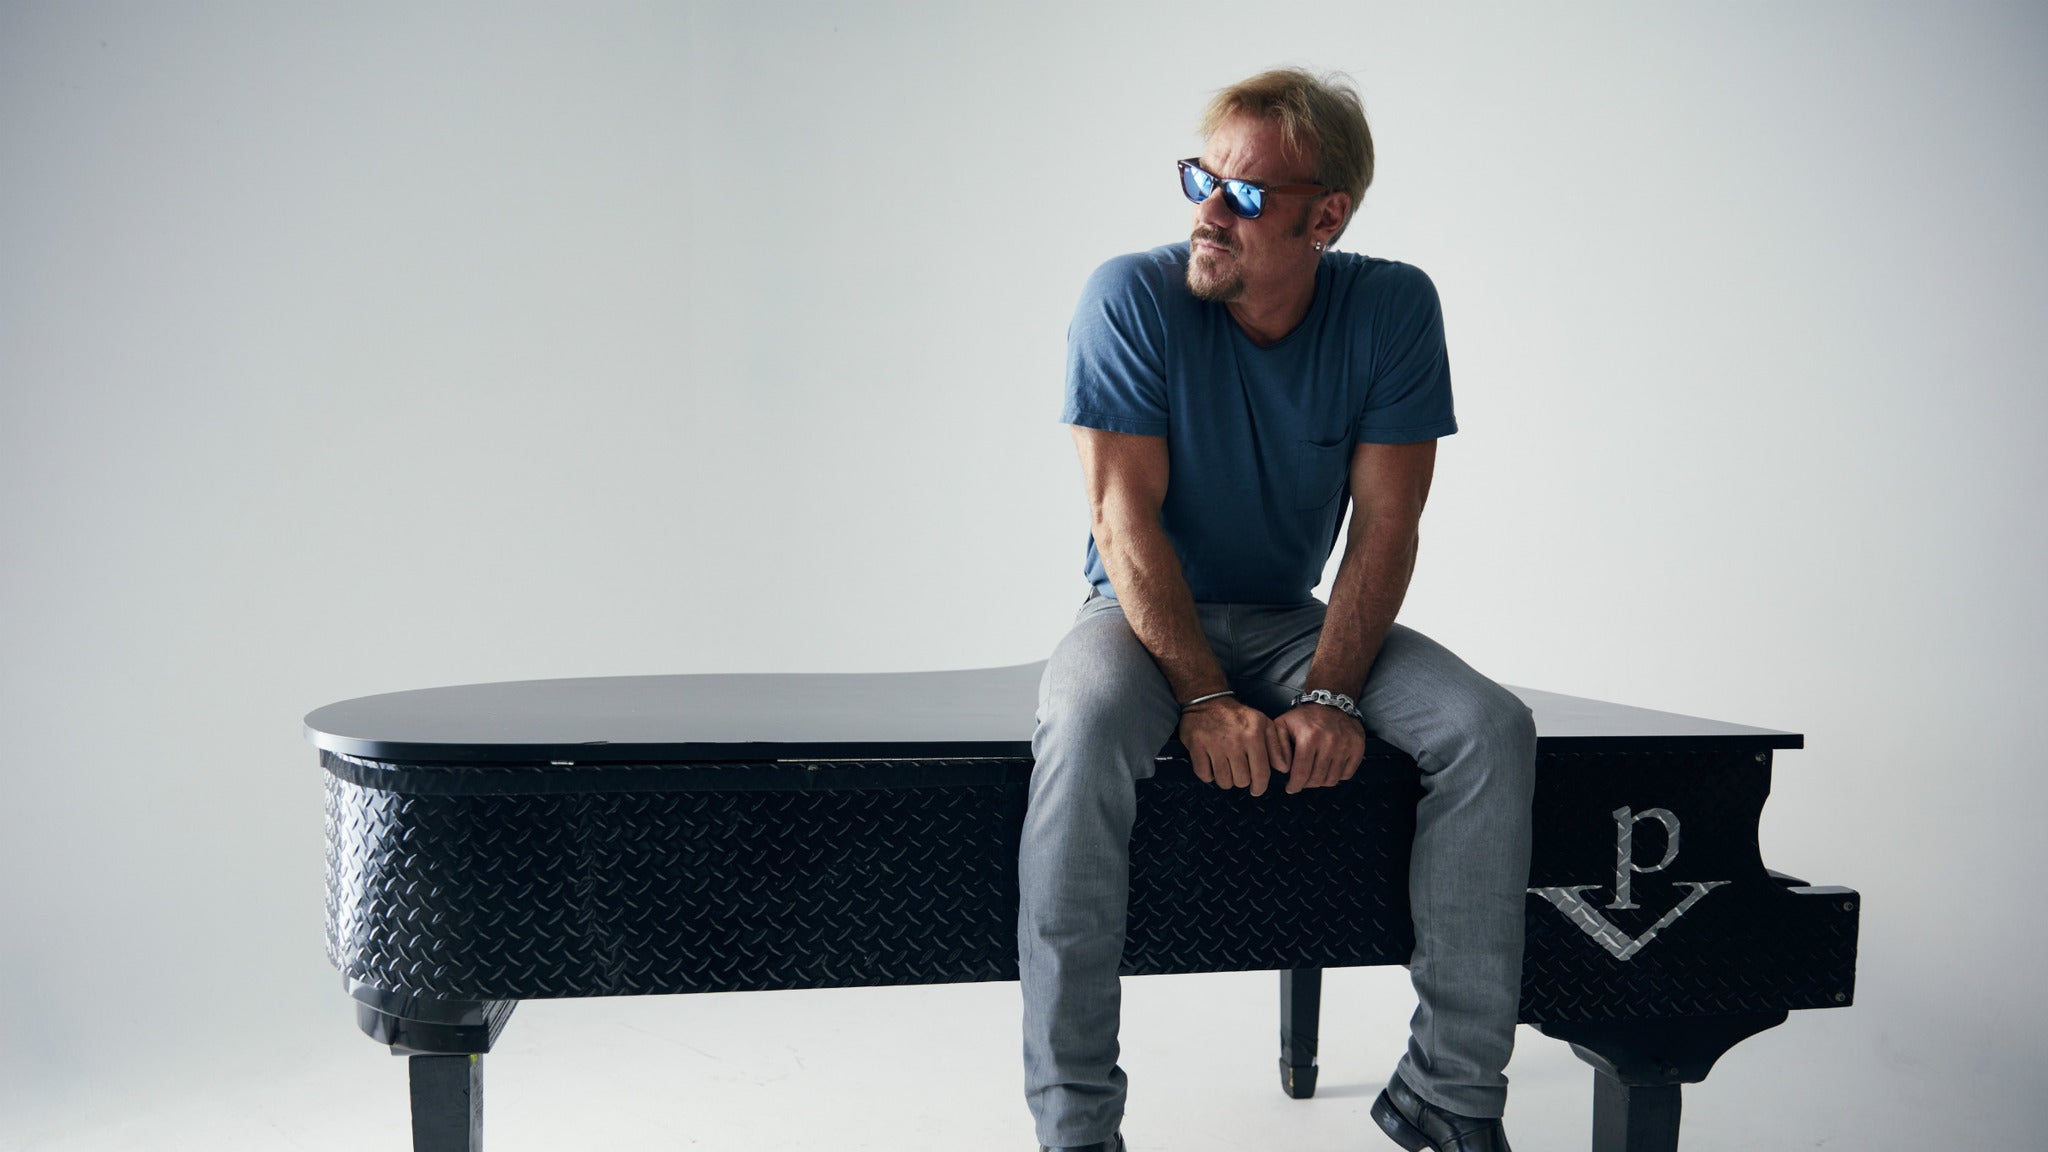 Phil Vassar at Infinity Hall - Hartford - Hartford, CT 06103